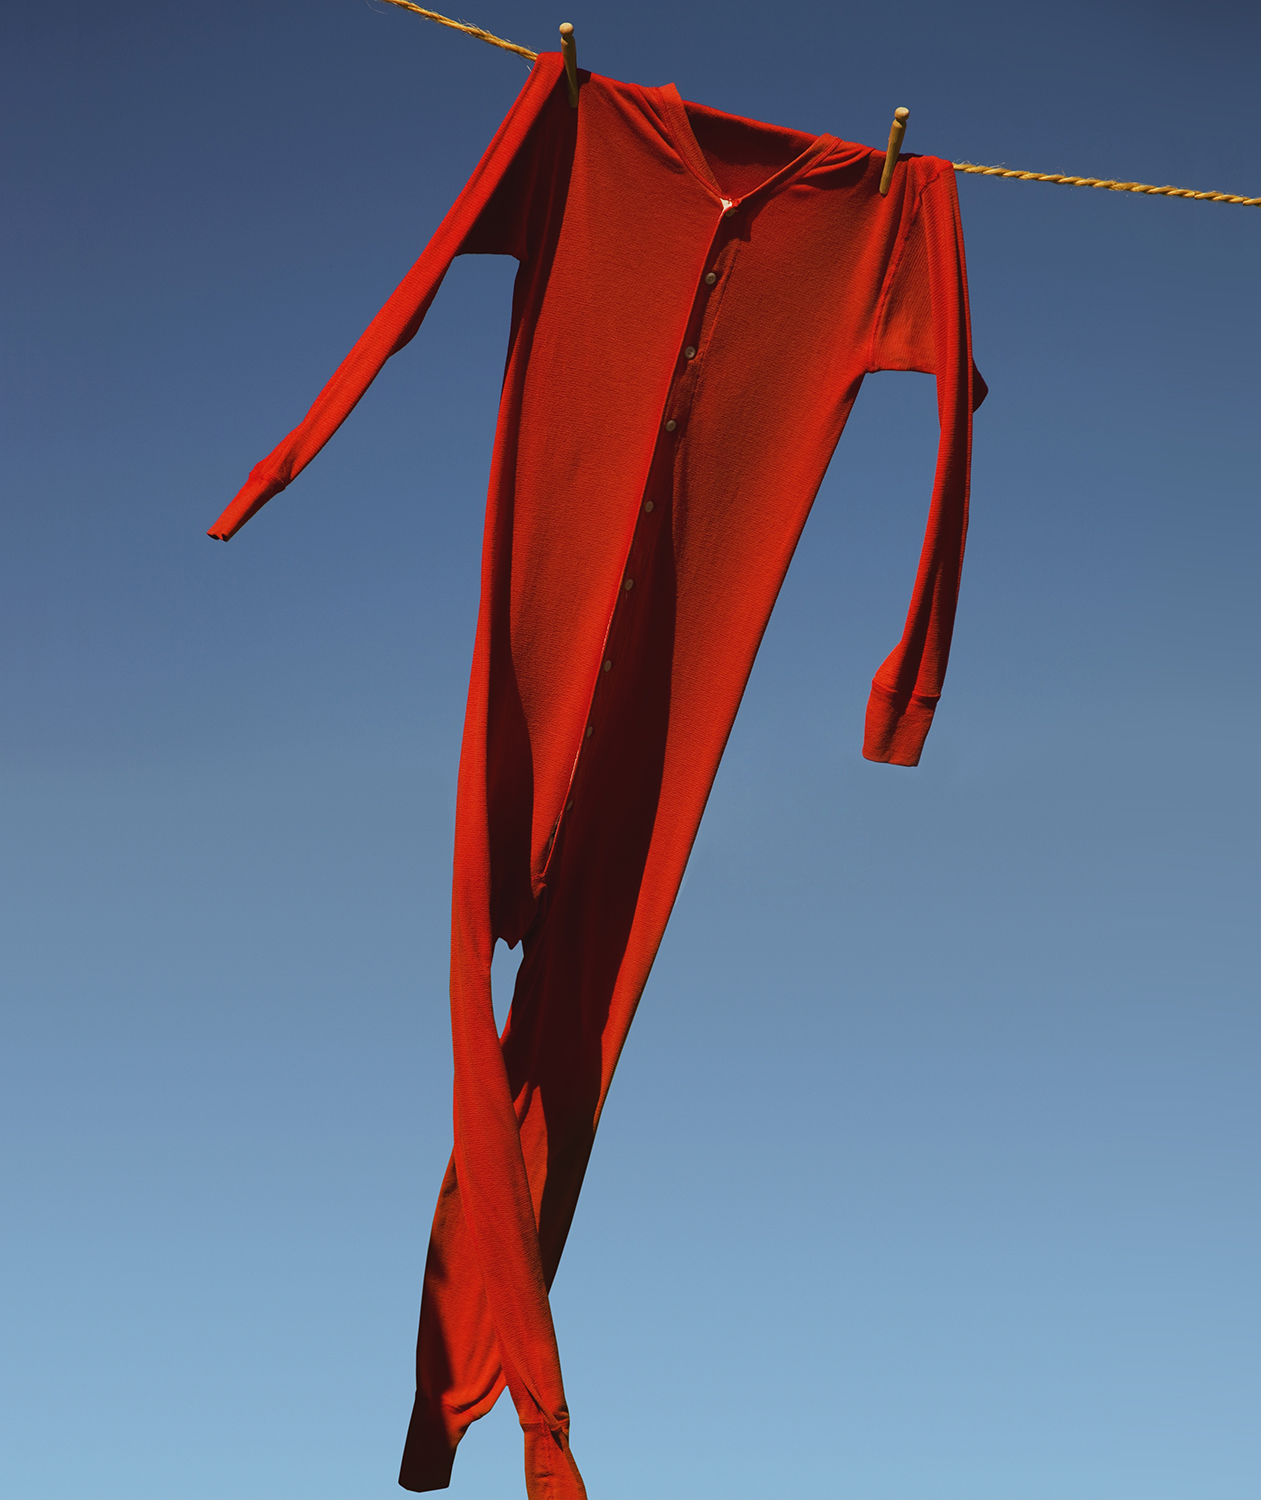 Red long johns on clothesline